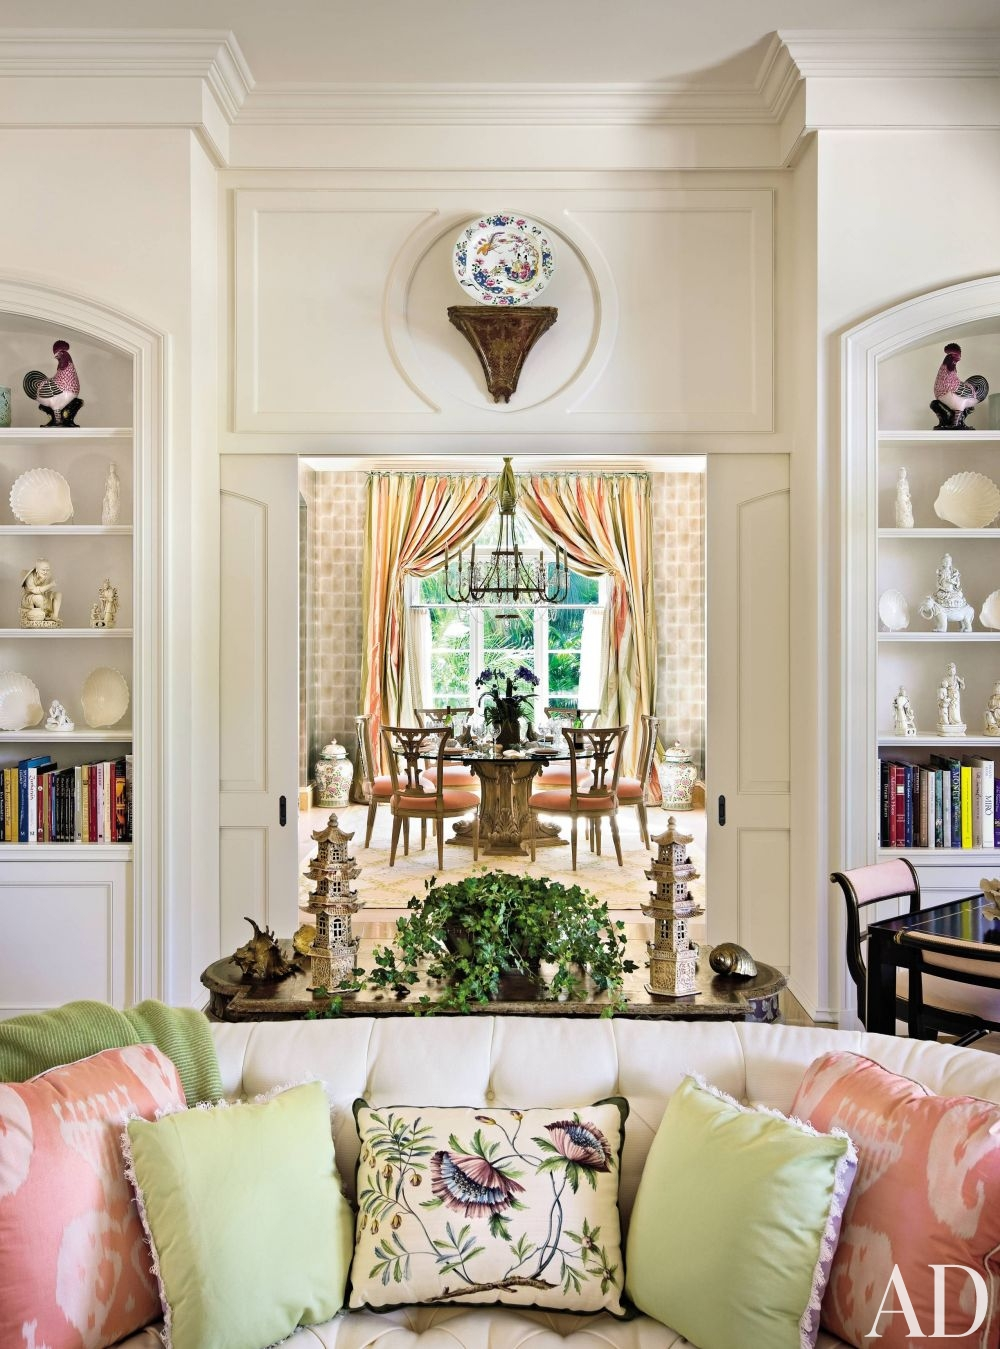 Vibrant Looks Define True Palm Beach Style — INTERIORS by G